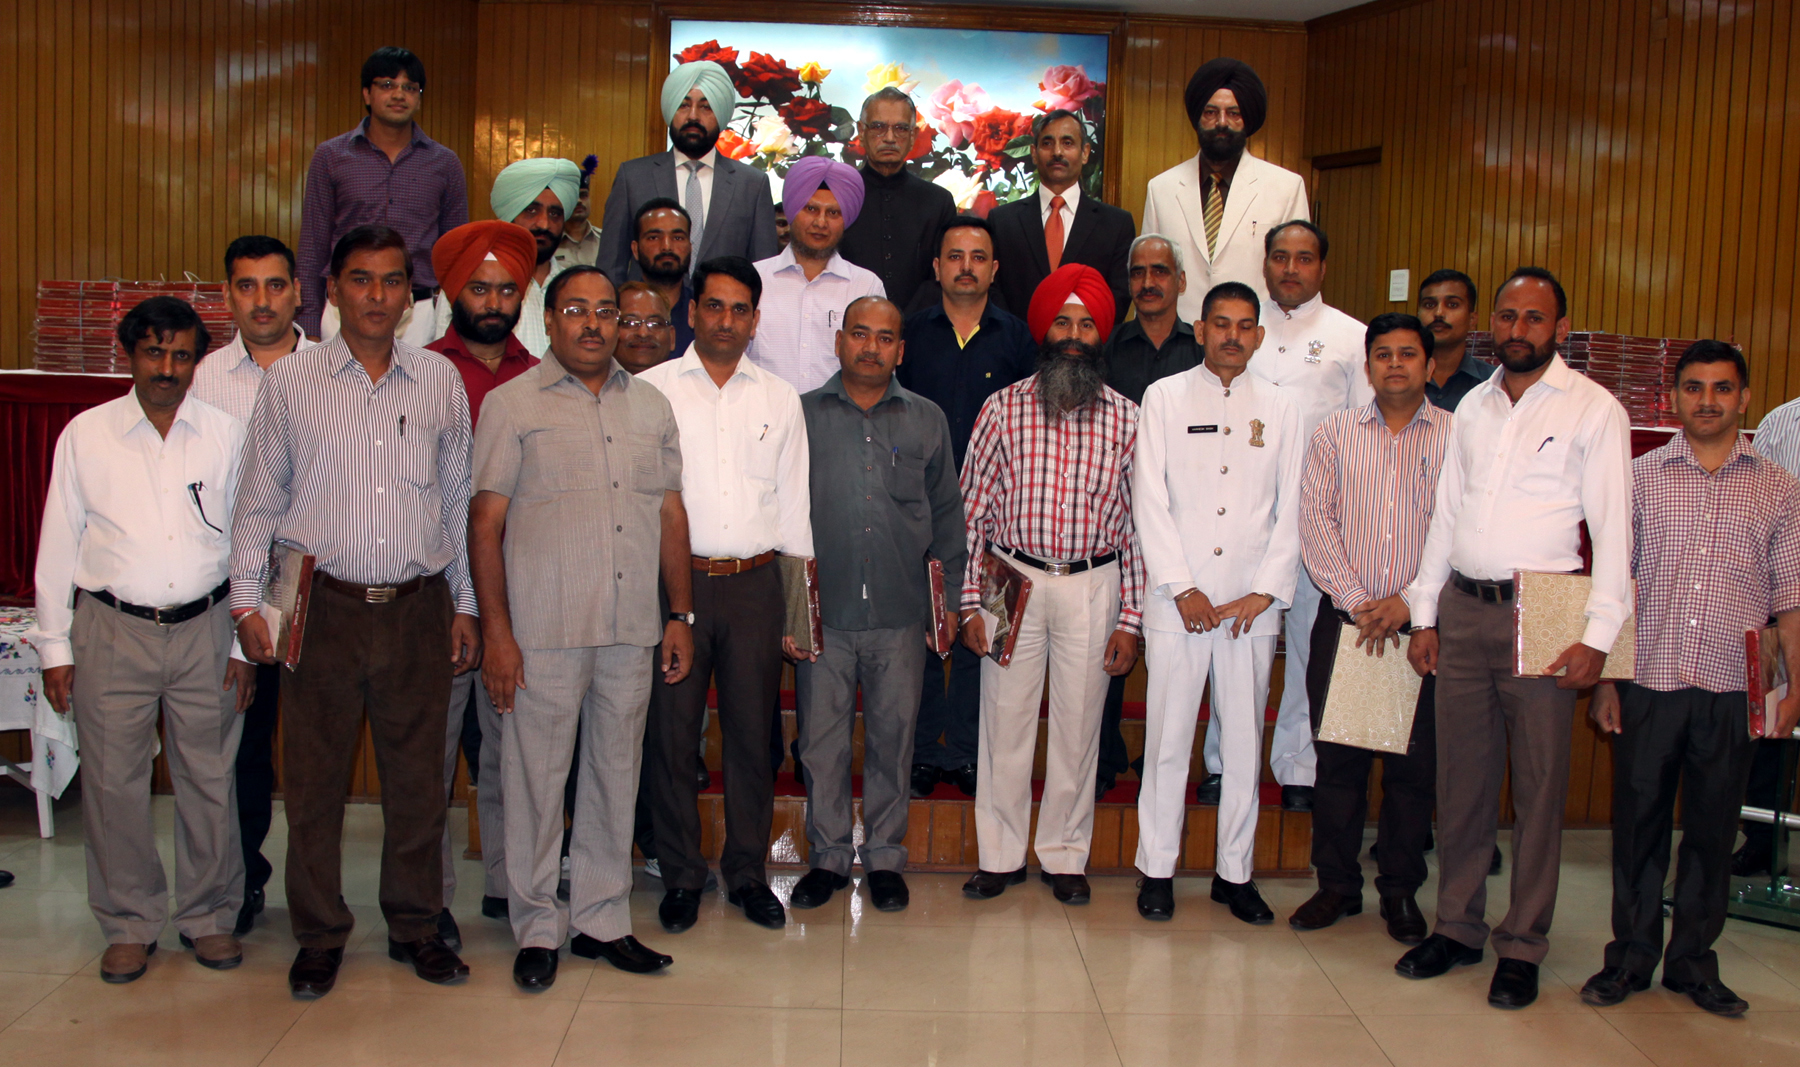 The Punjab Governor and Administrator, U.T., Chandigarh, Mr. Shivraj V. Patil posing with staff after distributing sweets on the occasion of Diwali at  Punjab Raj Bhavan on 22.10.2014.